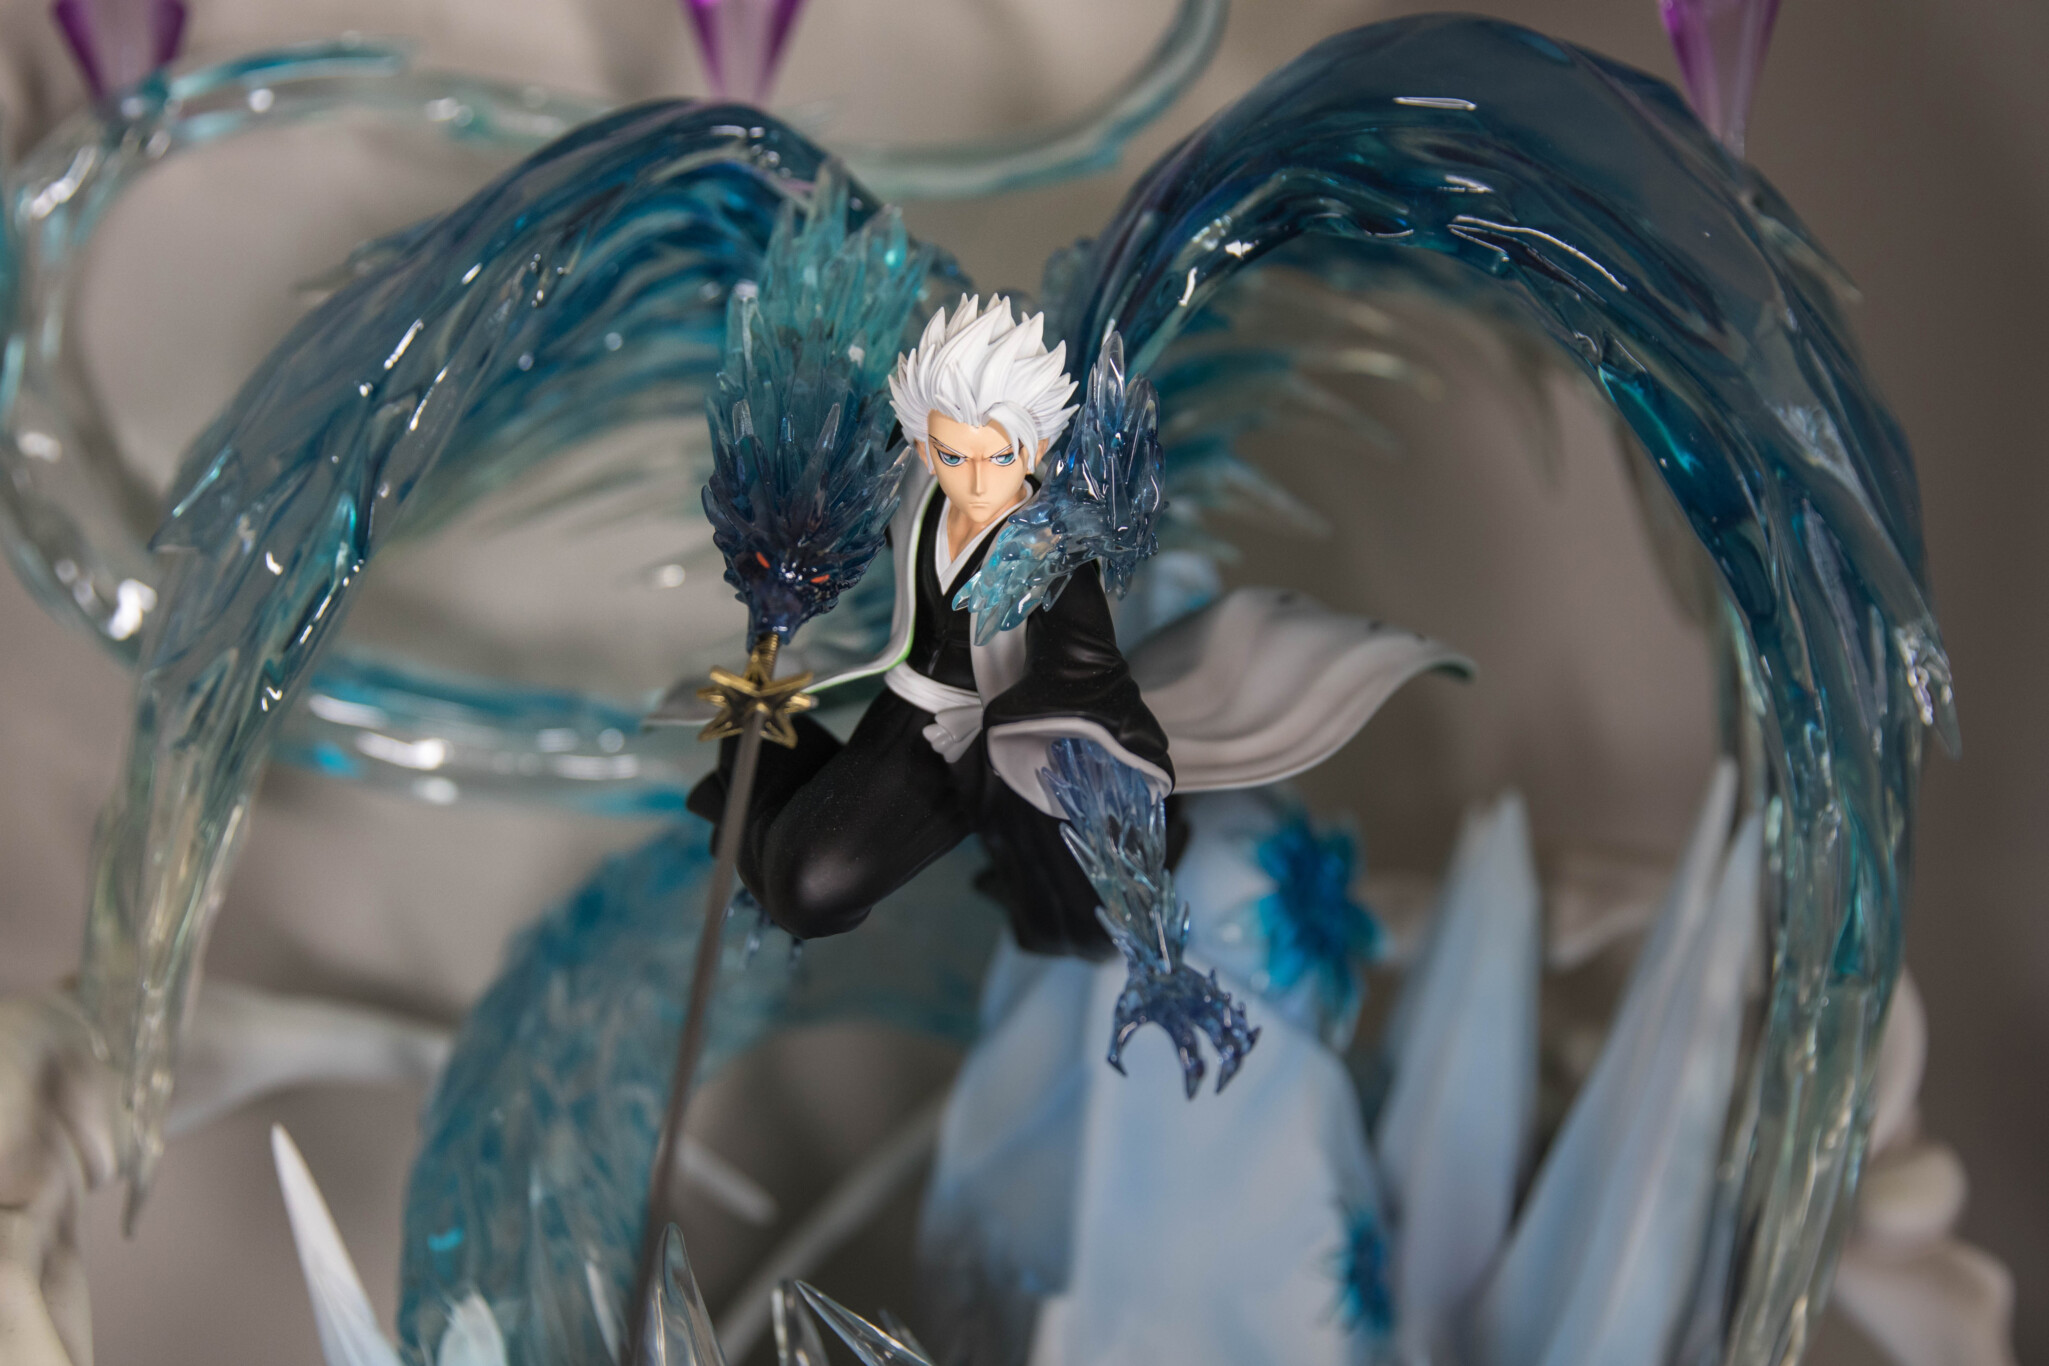 Guide to Buying Unlicensed Anime Statues